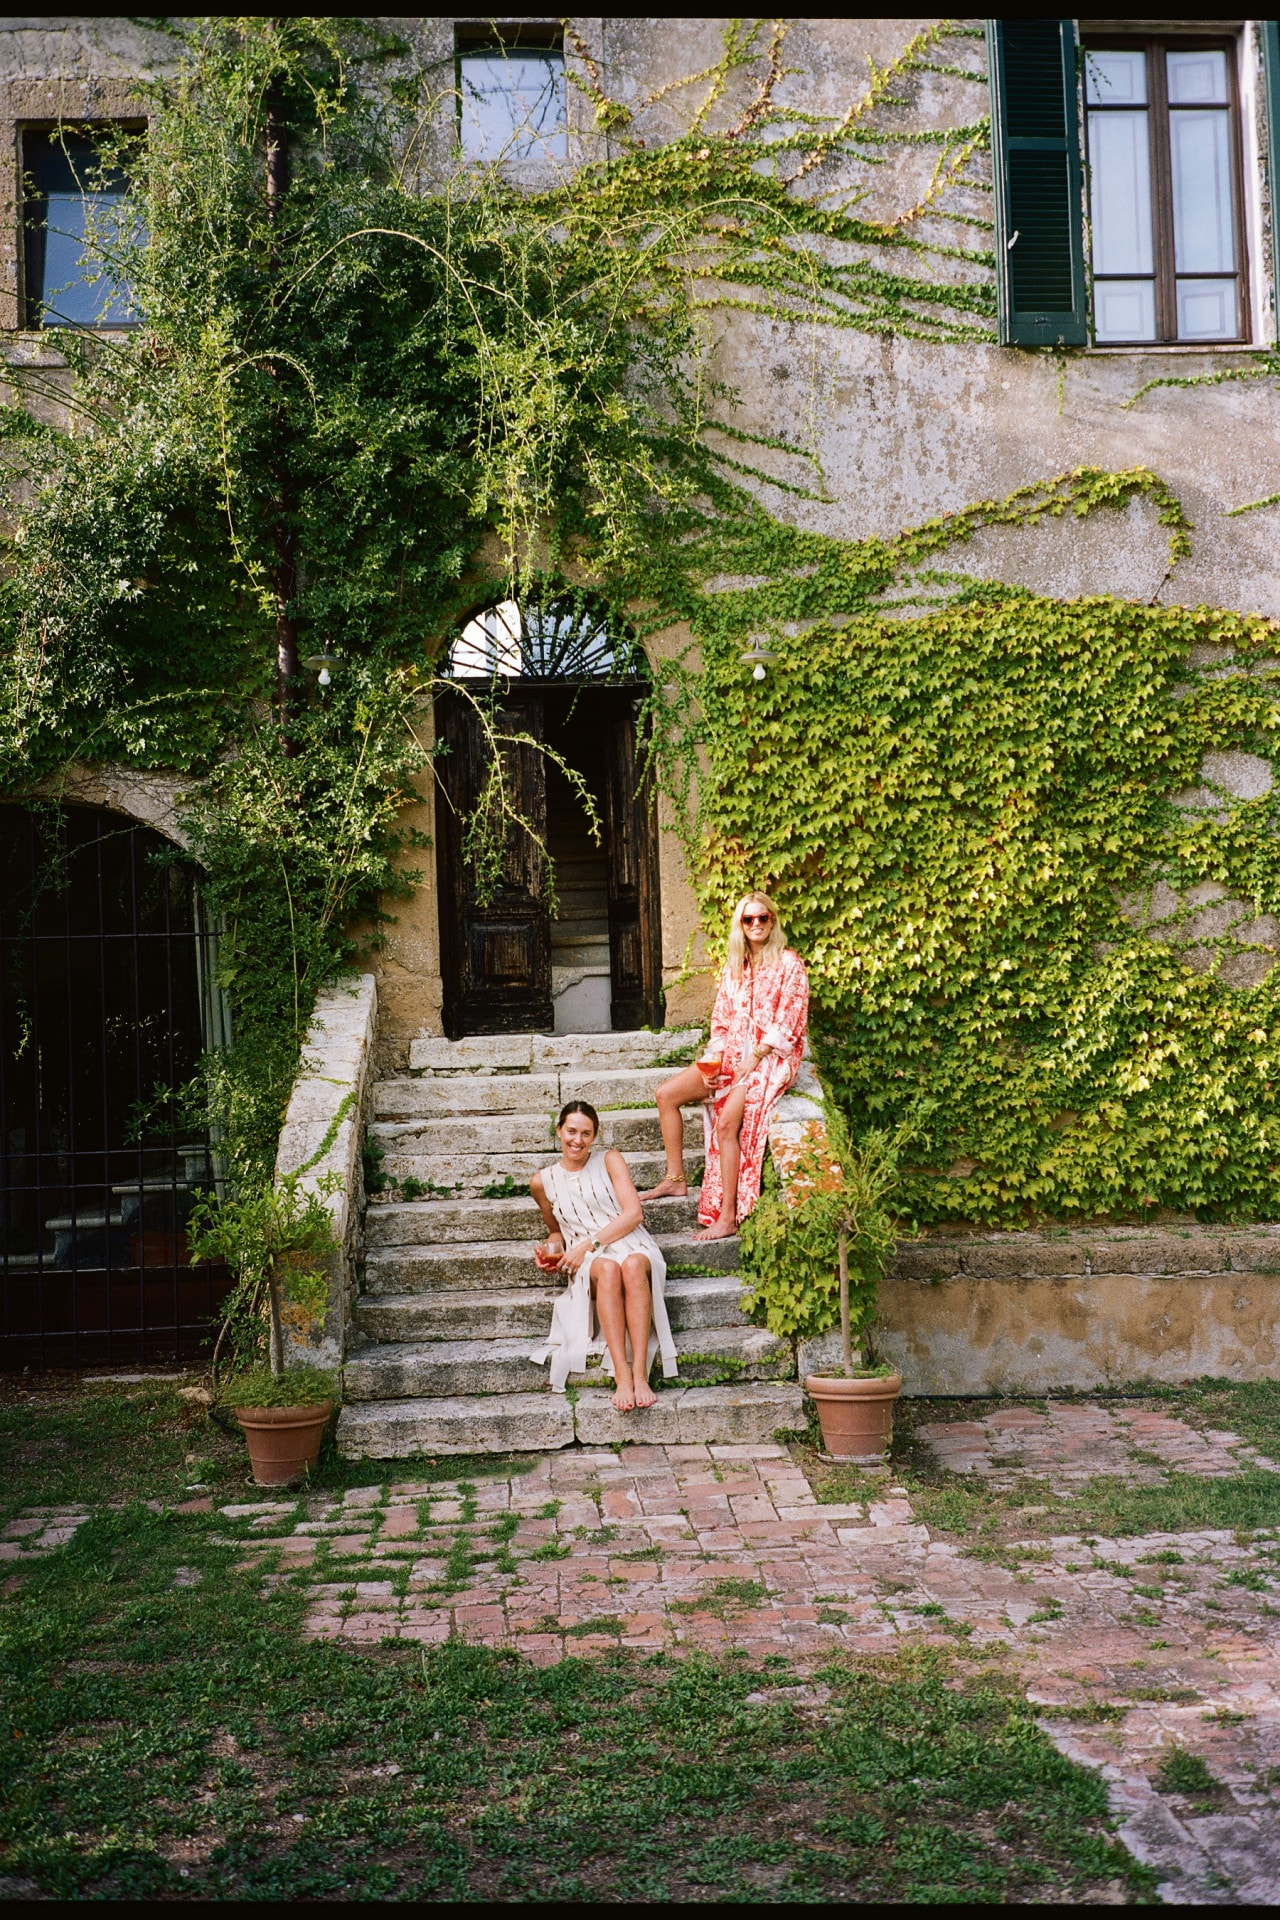 Tamsin Johnson and Lucy Folk share their Tuscan holiday tips